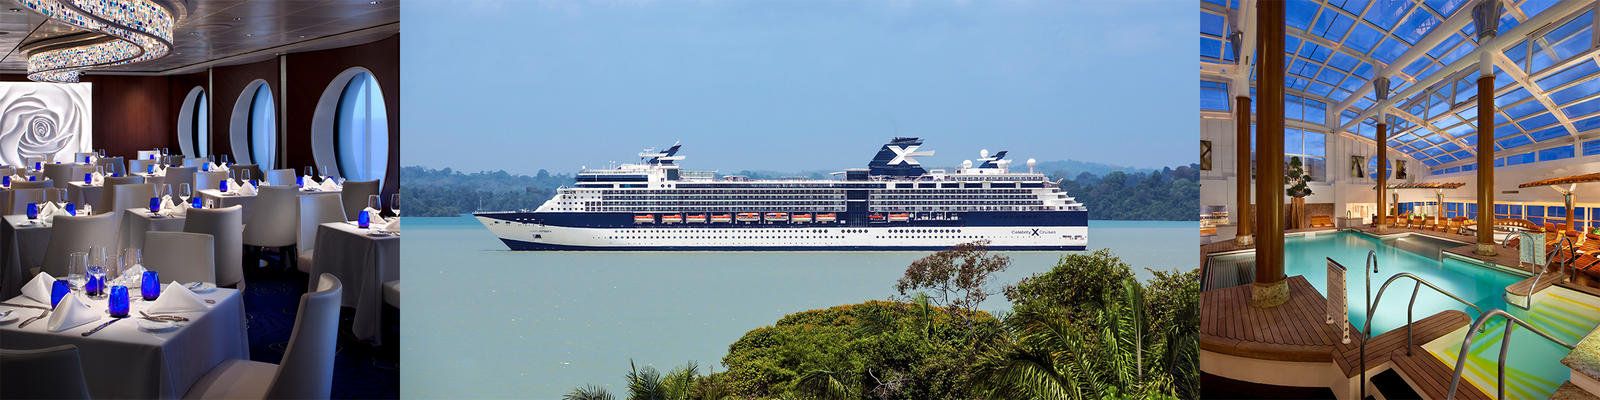 Image Result For Celebrity Constellation Review Cruise Critic